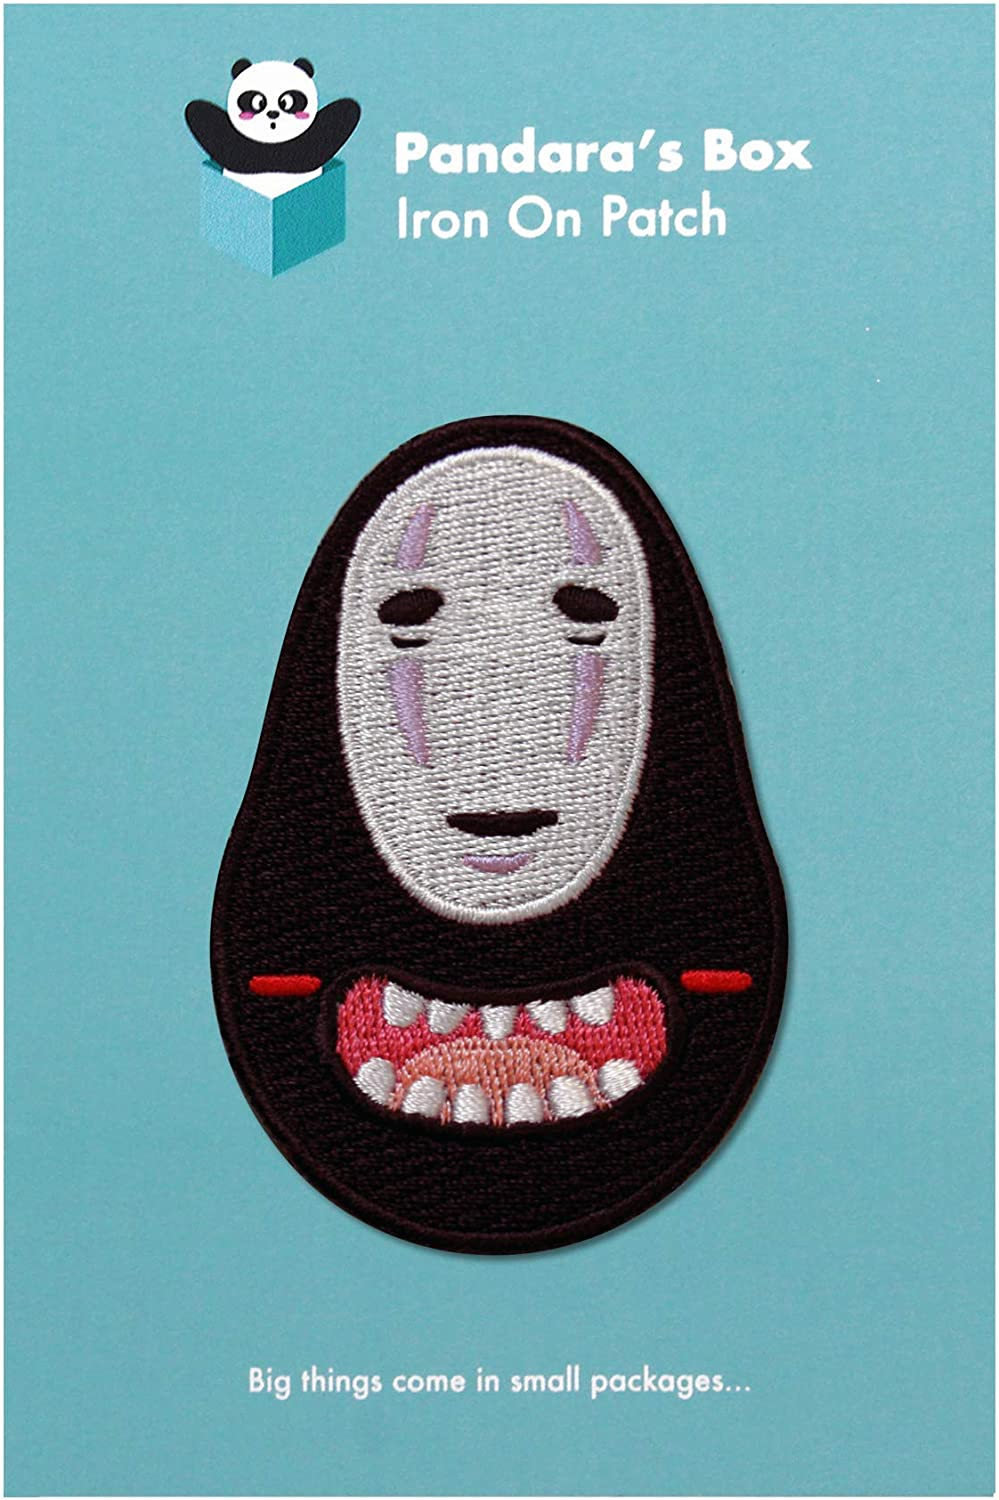 Bags Denim Jackets No Face Patch Iron on /& Sew on Embroidered Japanese Ghost Applique Decoration DIY Craft for Tshirts Hats